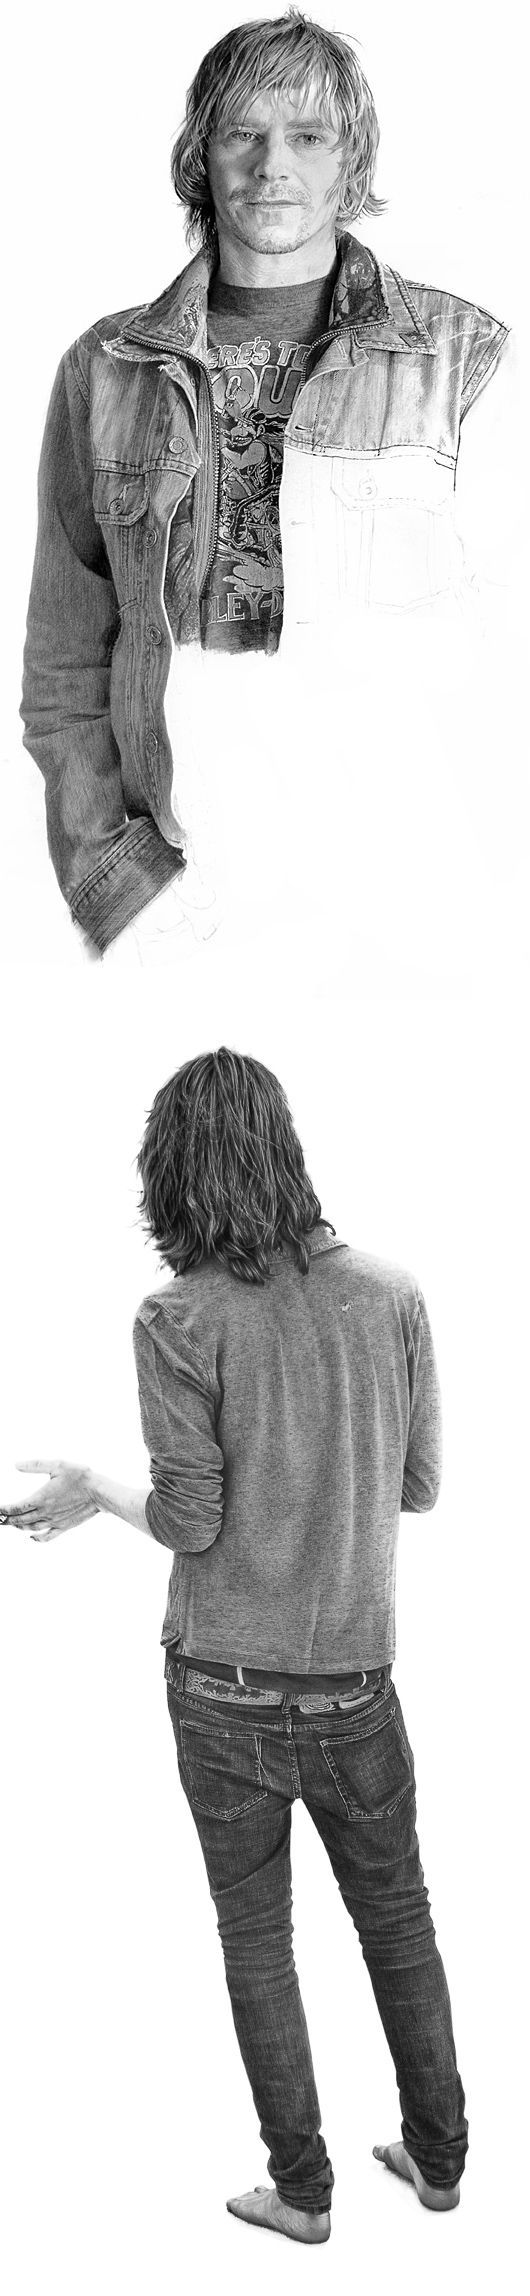 Hyper-Realistic Graphite Drawings